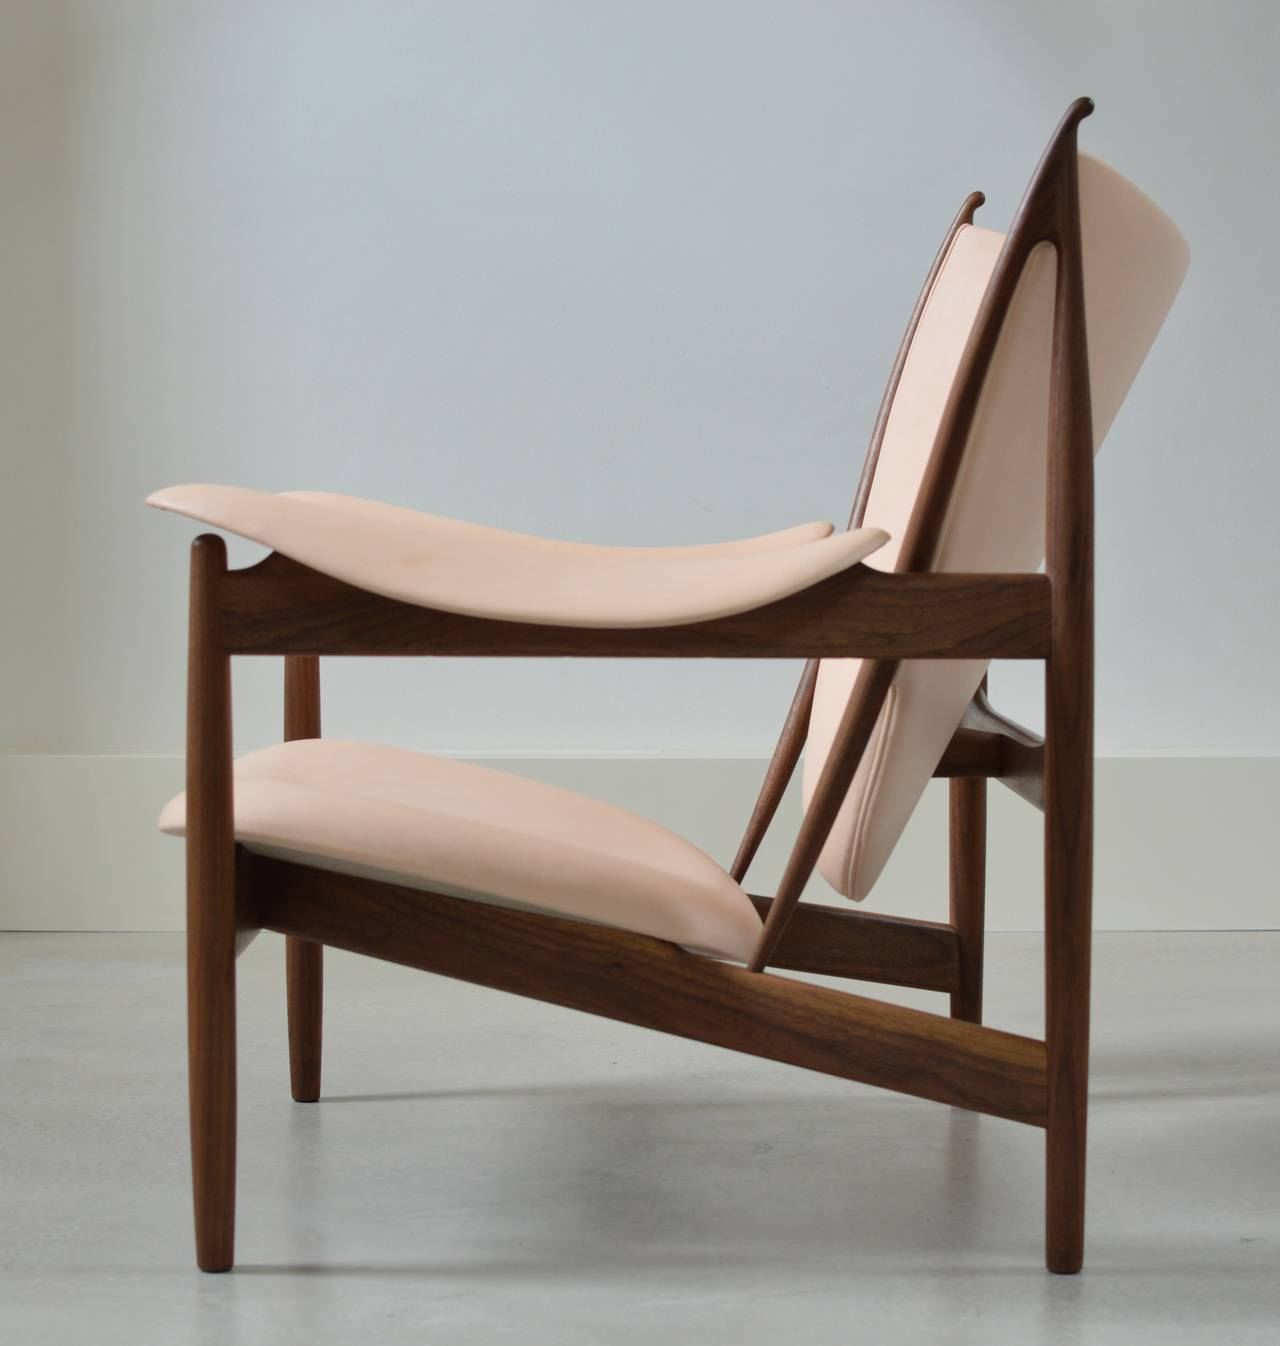 finn juhl chieftain chair at 1stdibs